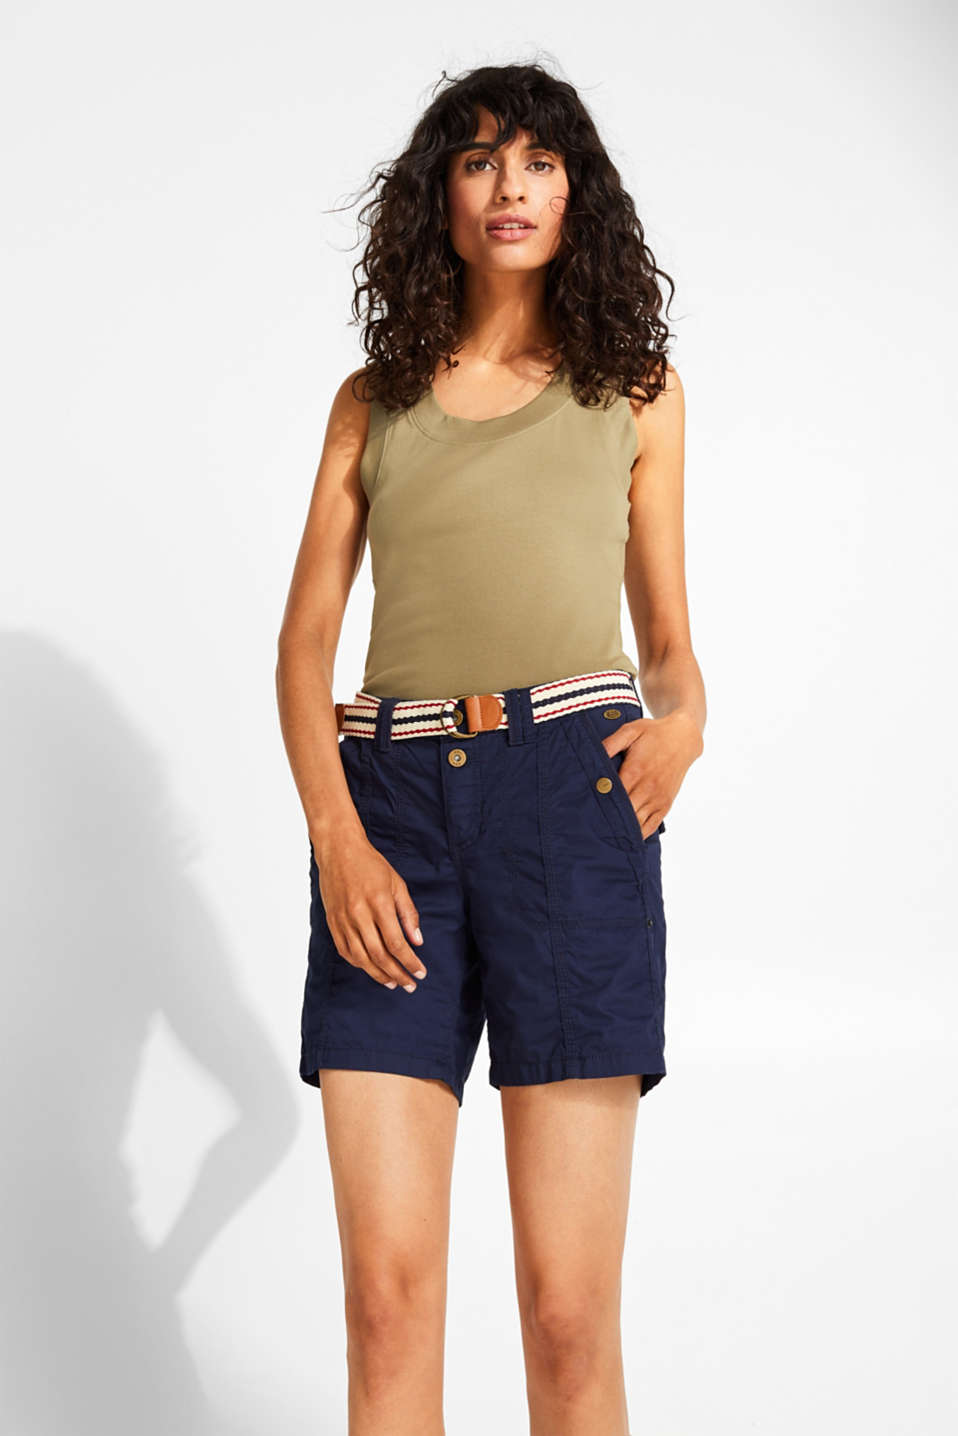 edc - PLAY shorts with a belt, 100% cotton